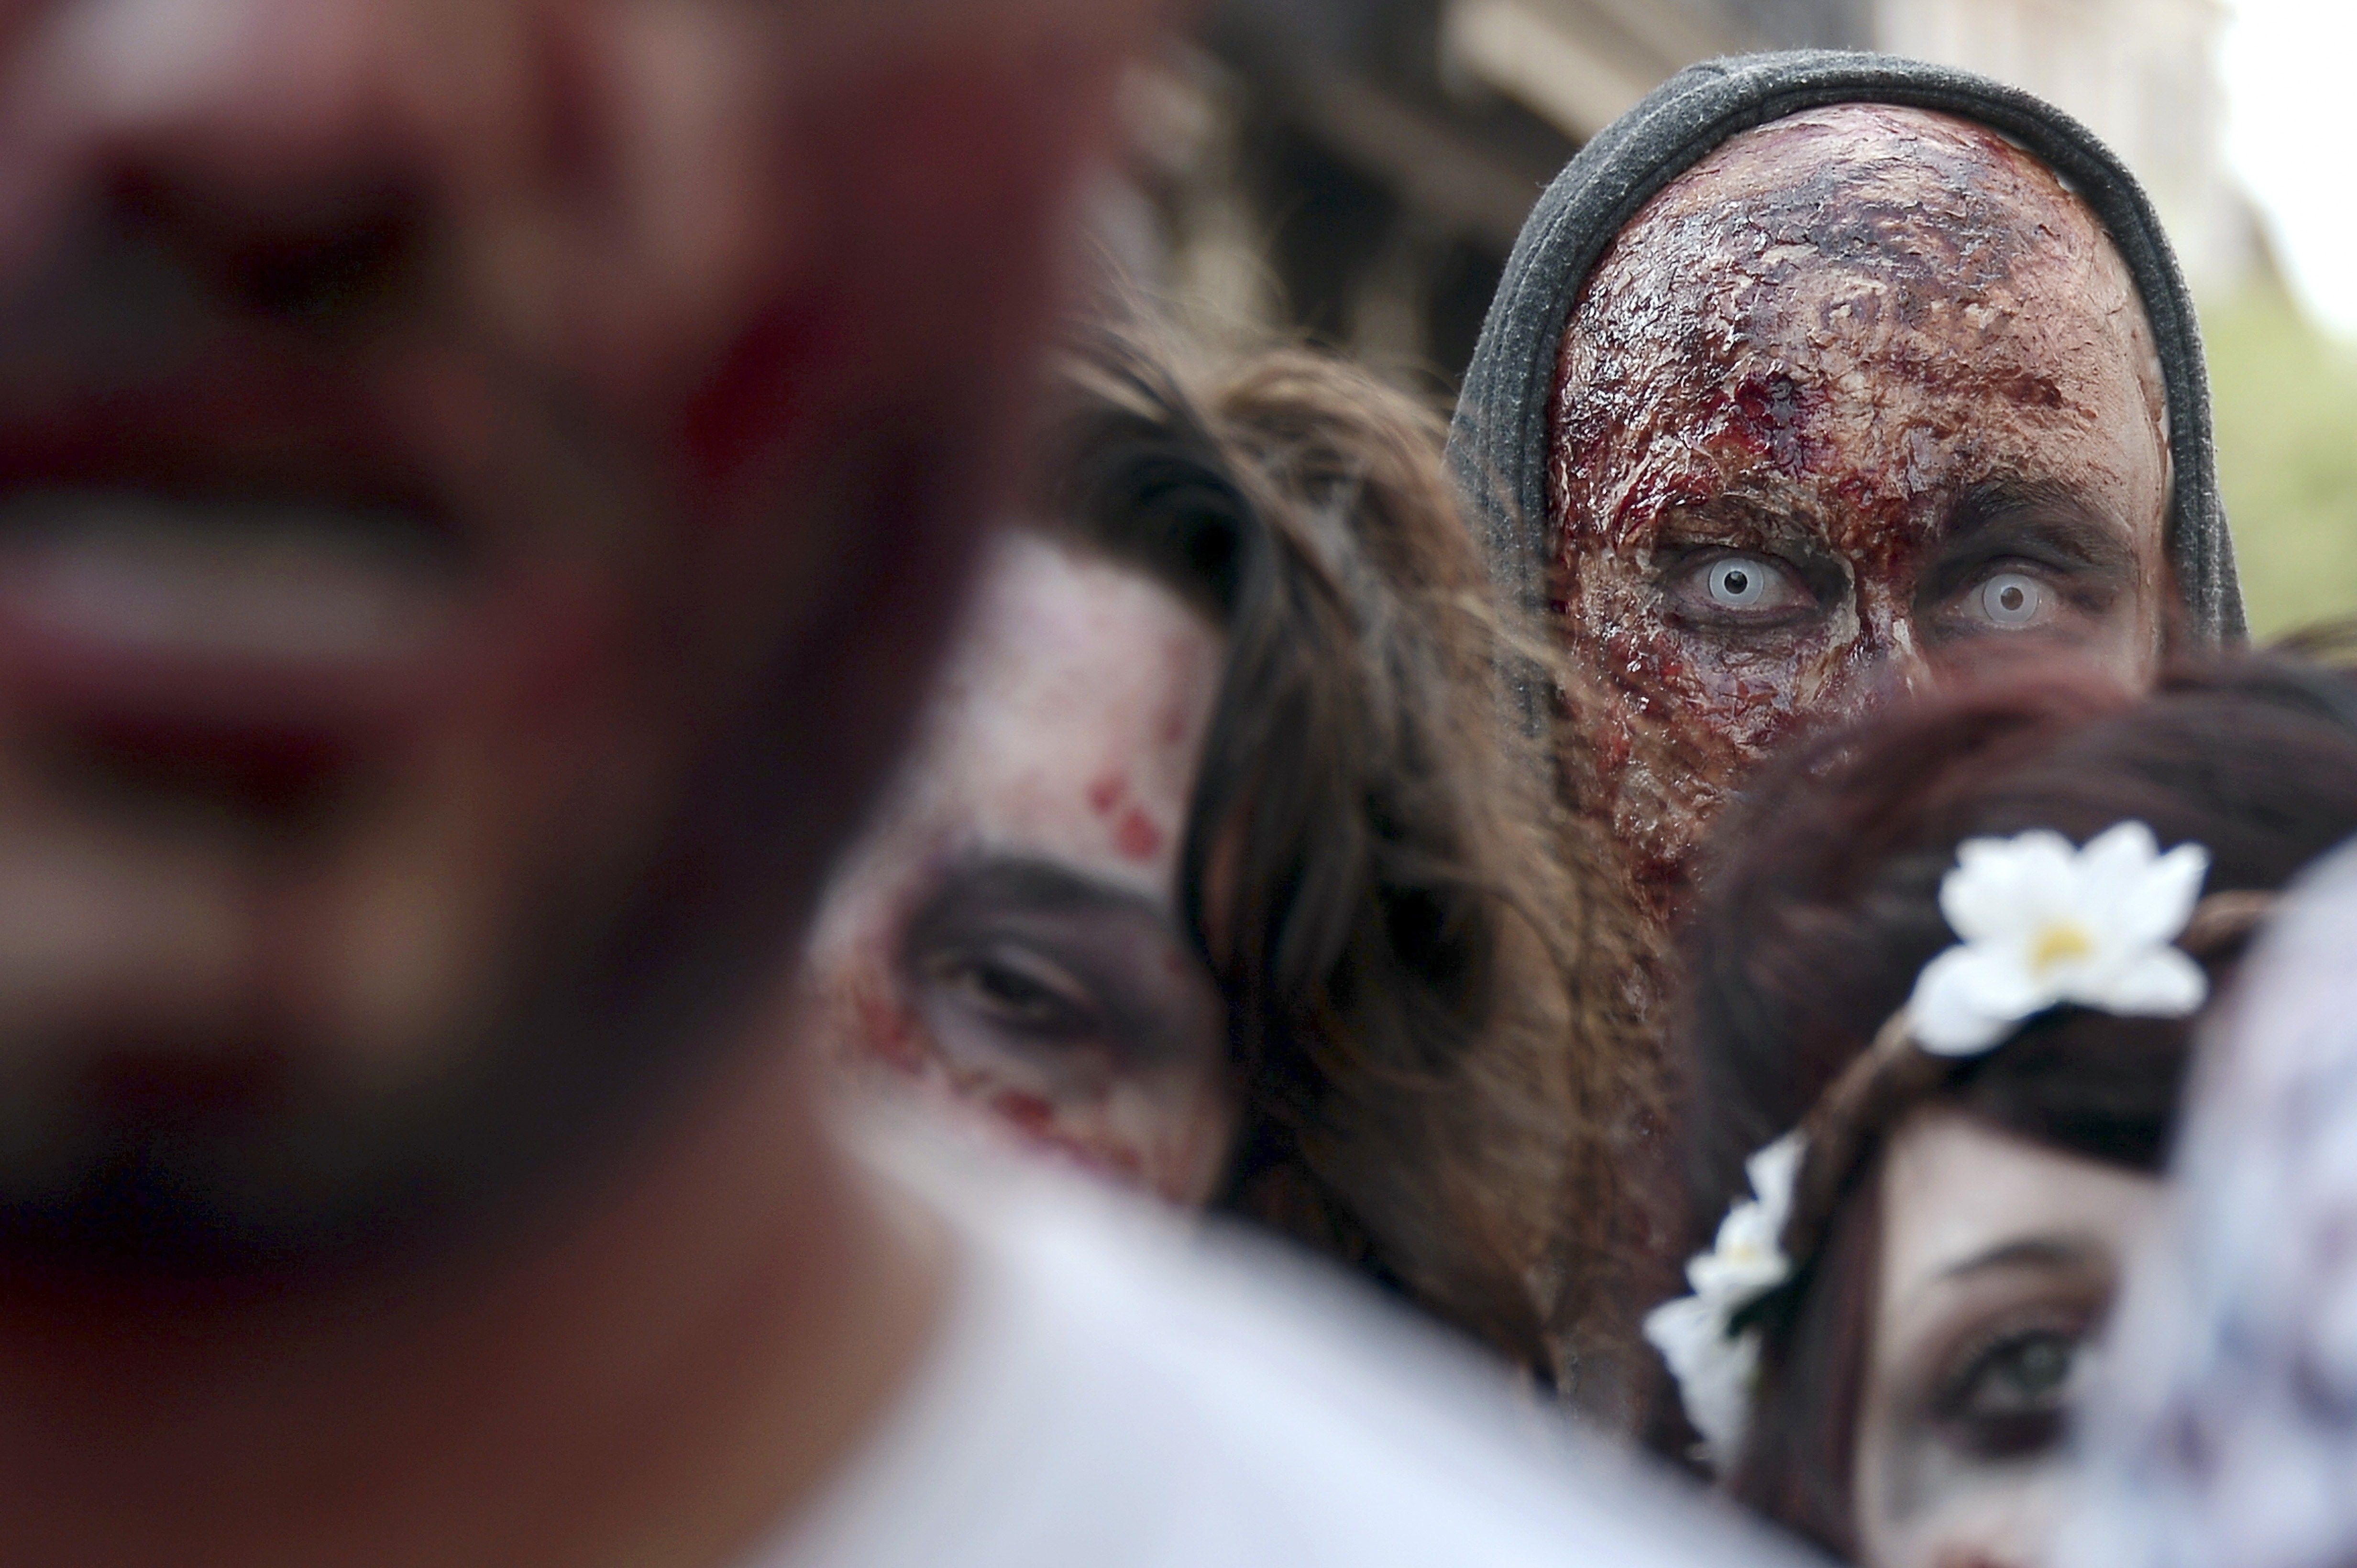 People dressed as zombies take part in the Zombie Walk event on Sept. 13, 2014, in the eastern French city of Strasbourg